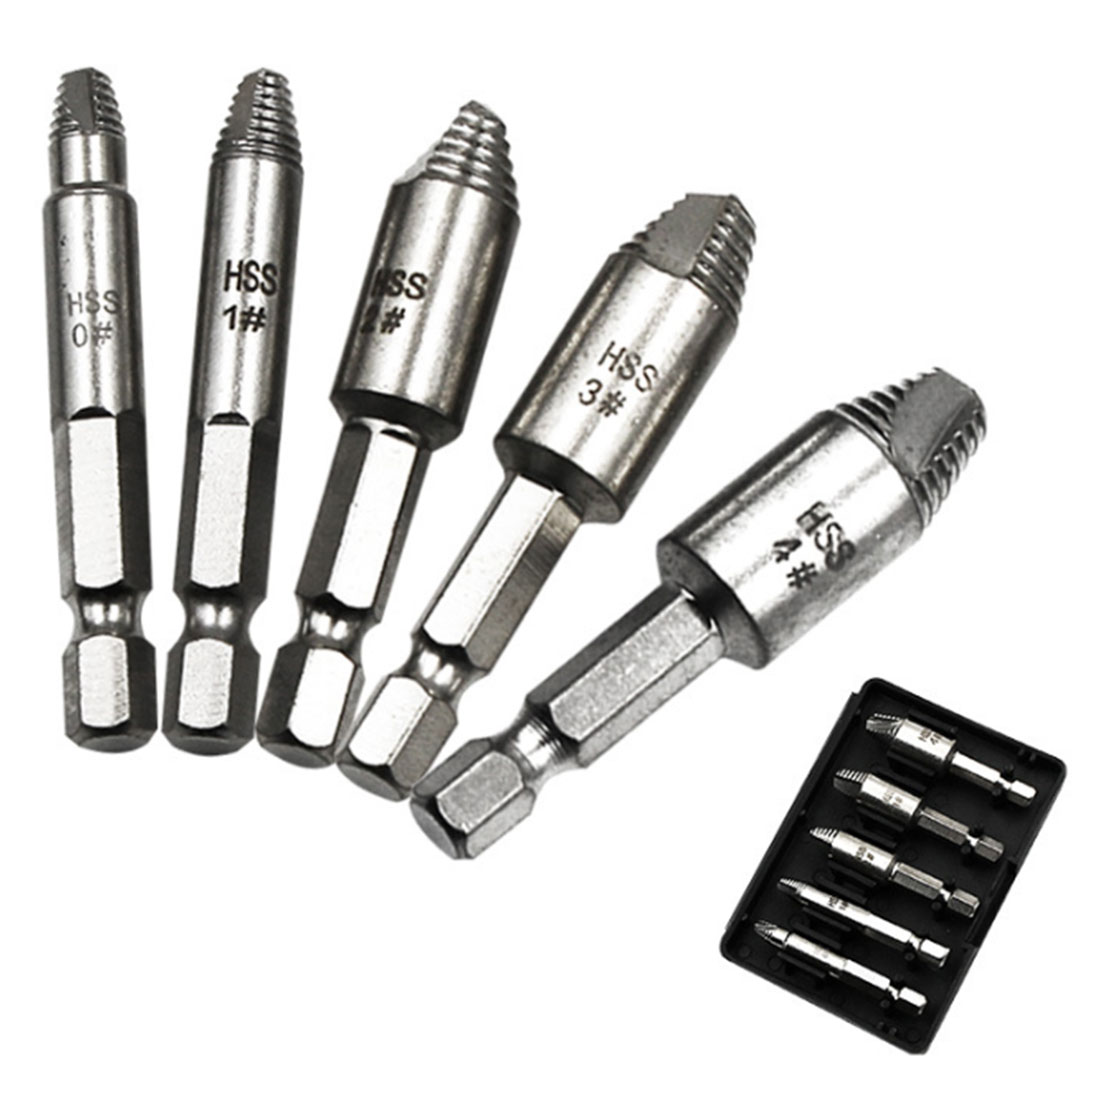 HSS Drill Bits Damaged Screw Extractor Guide Set Broken Speed Out Easy Out Bolt Stud Stripped Screw Remover Tool